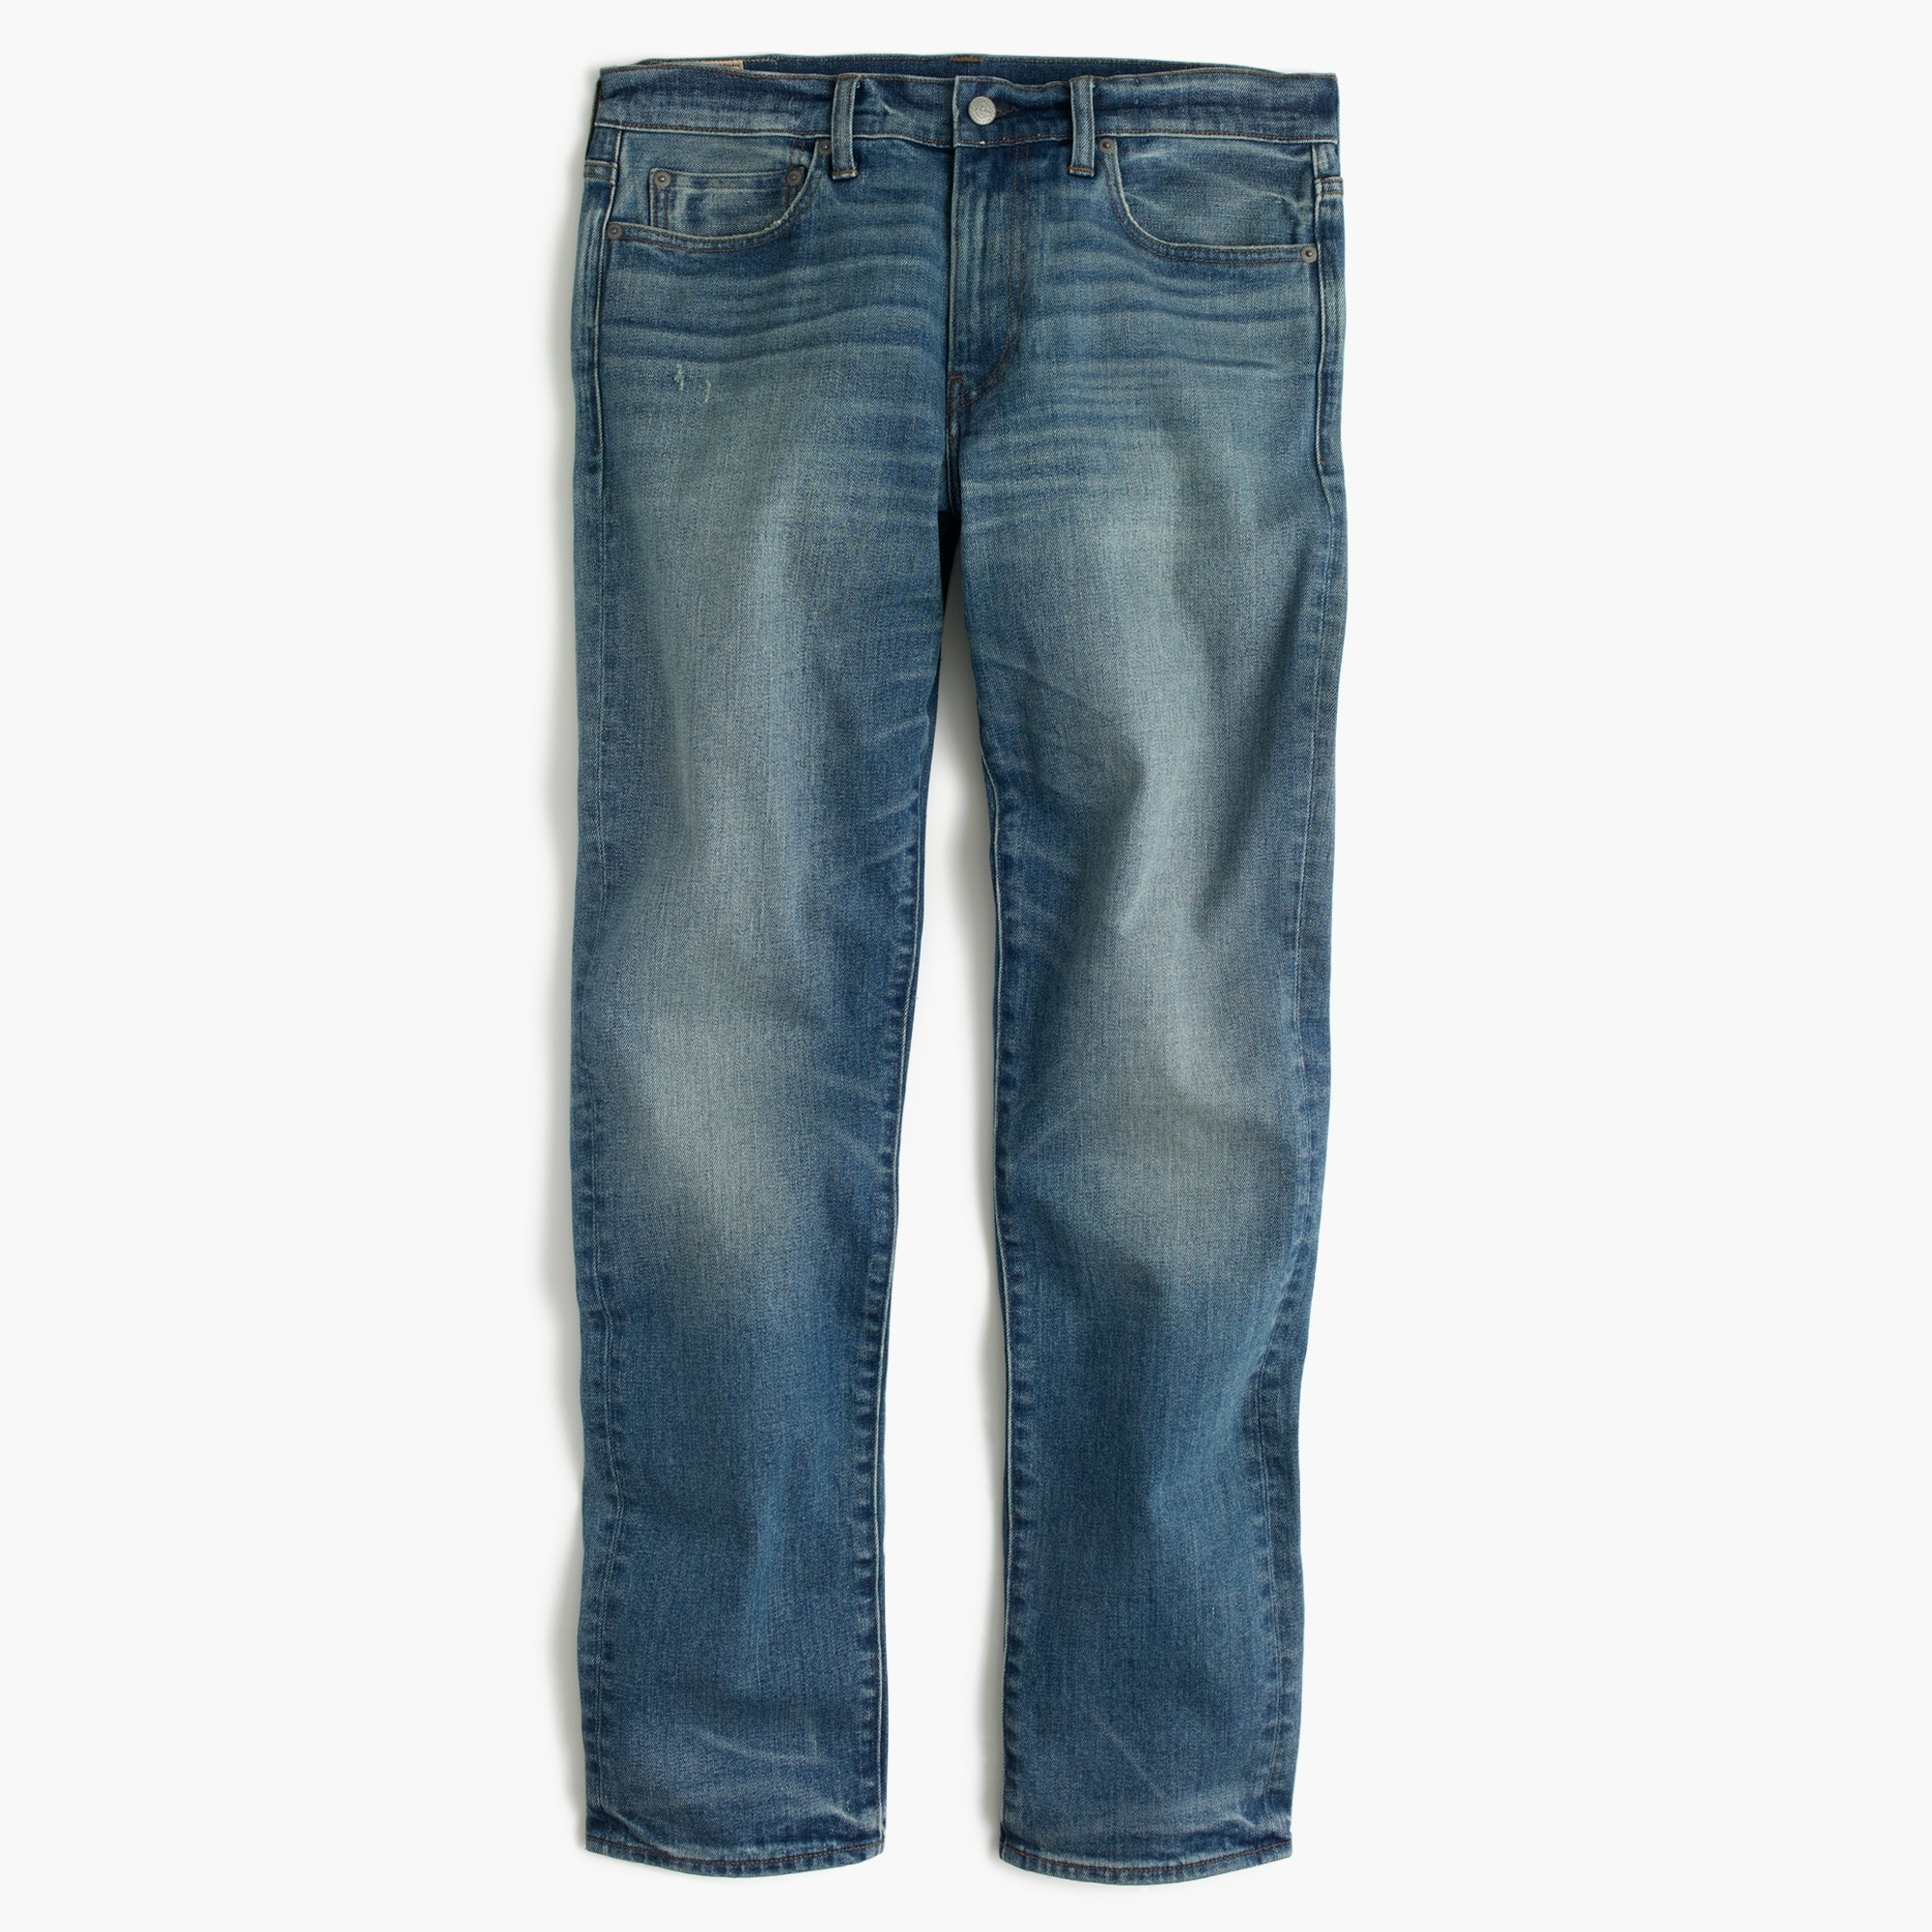 Image 2 for 770 Straight-fit stretch jean in Whitford wash